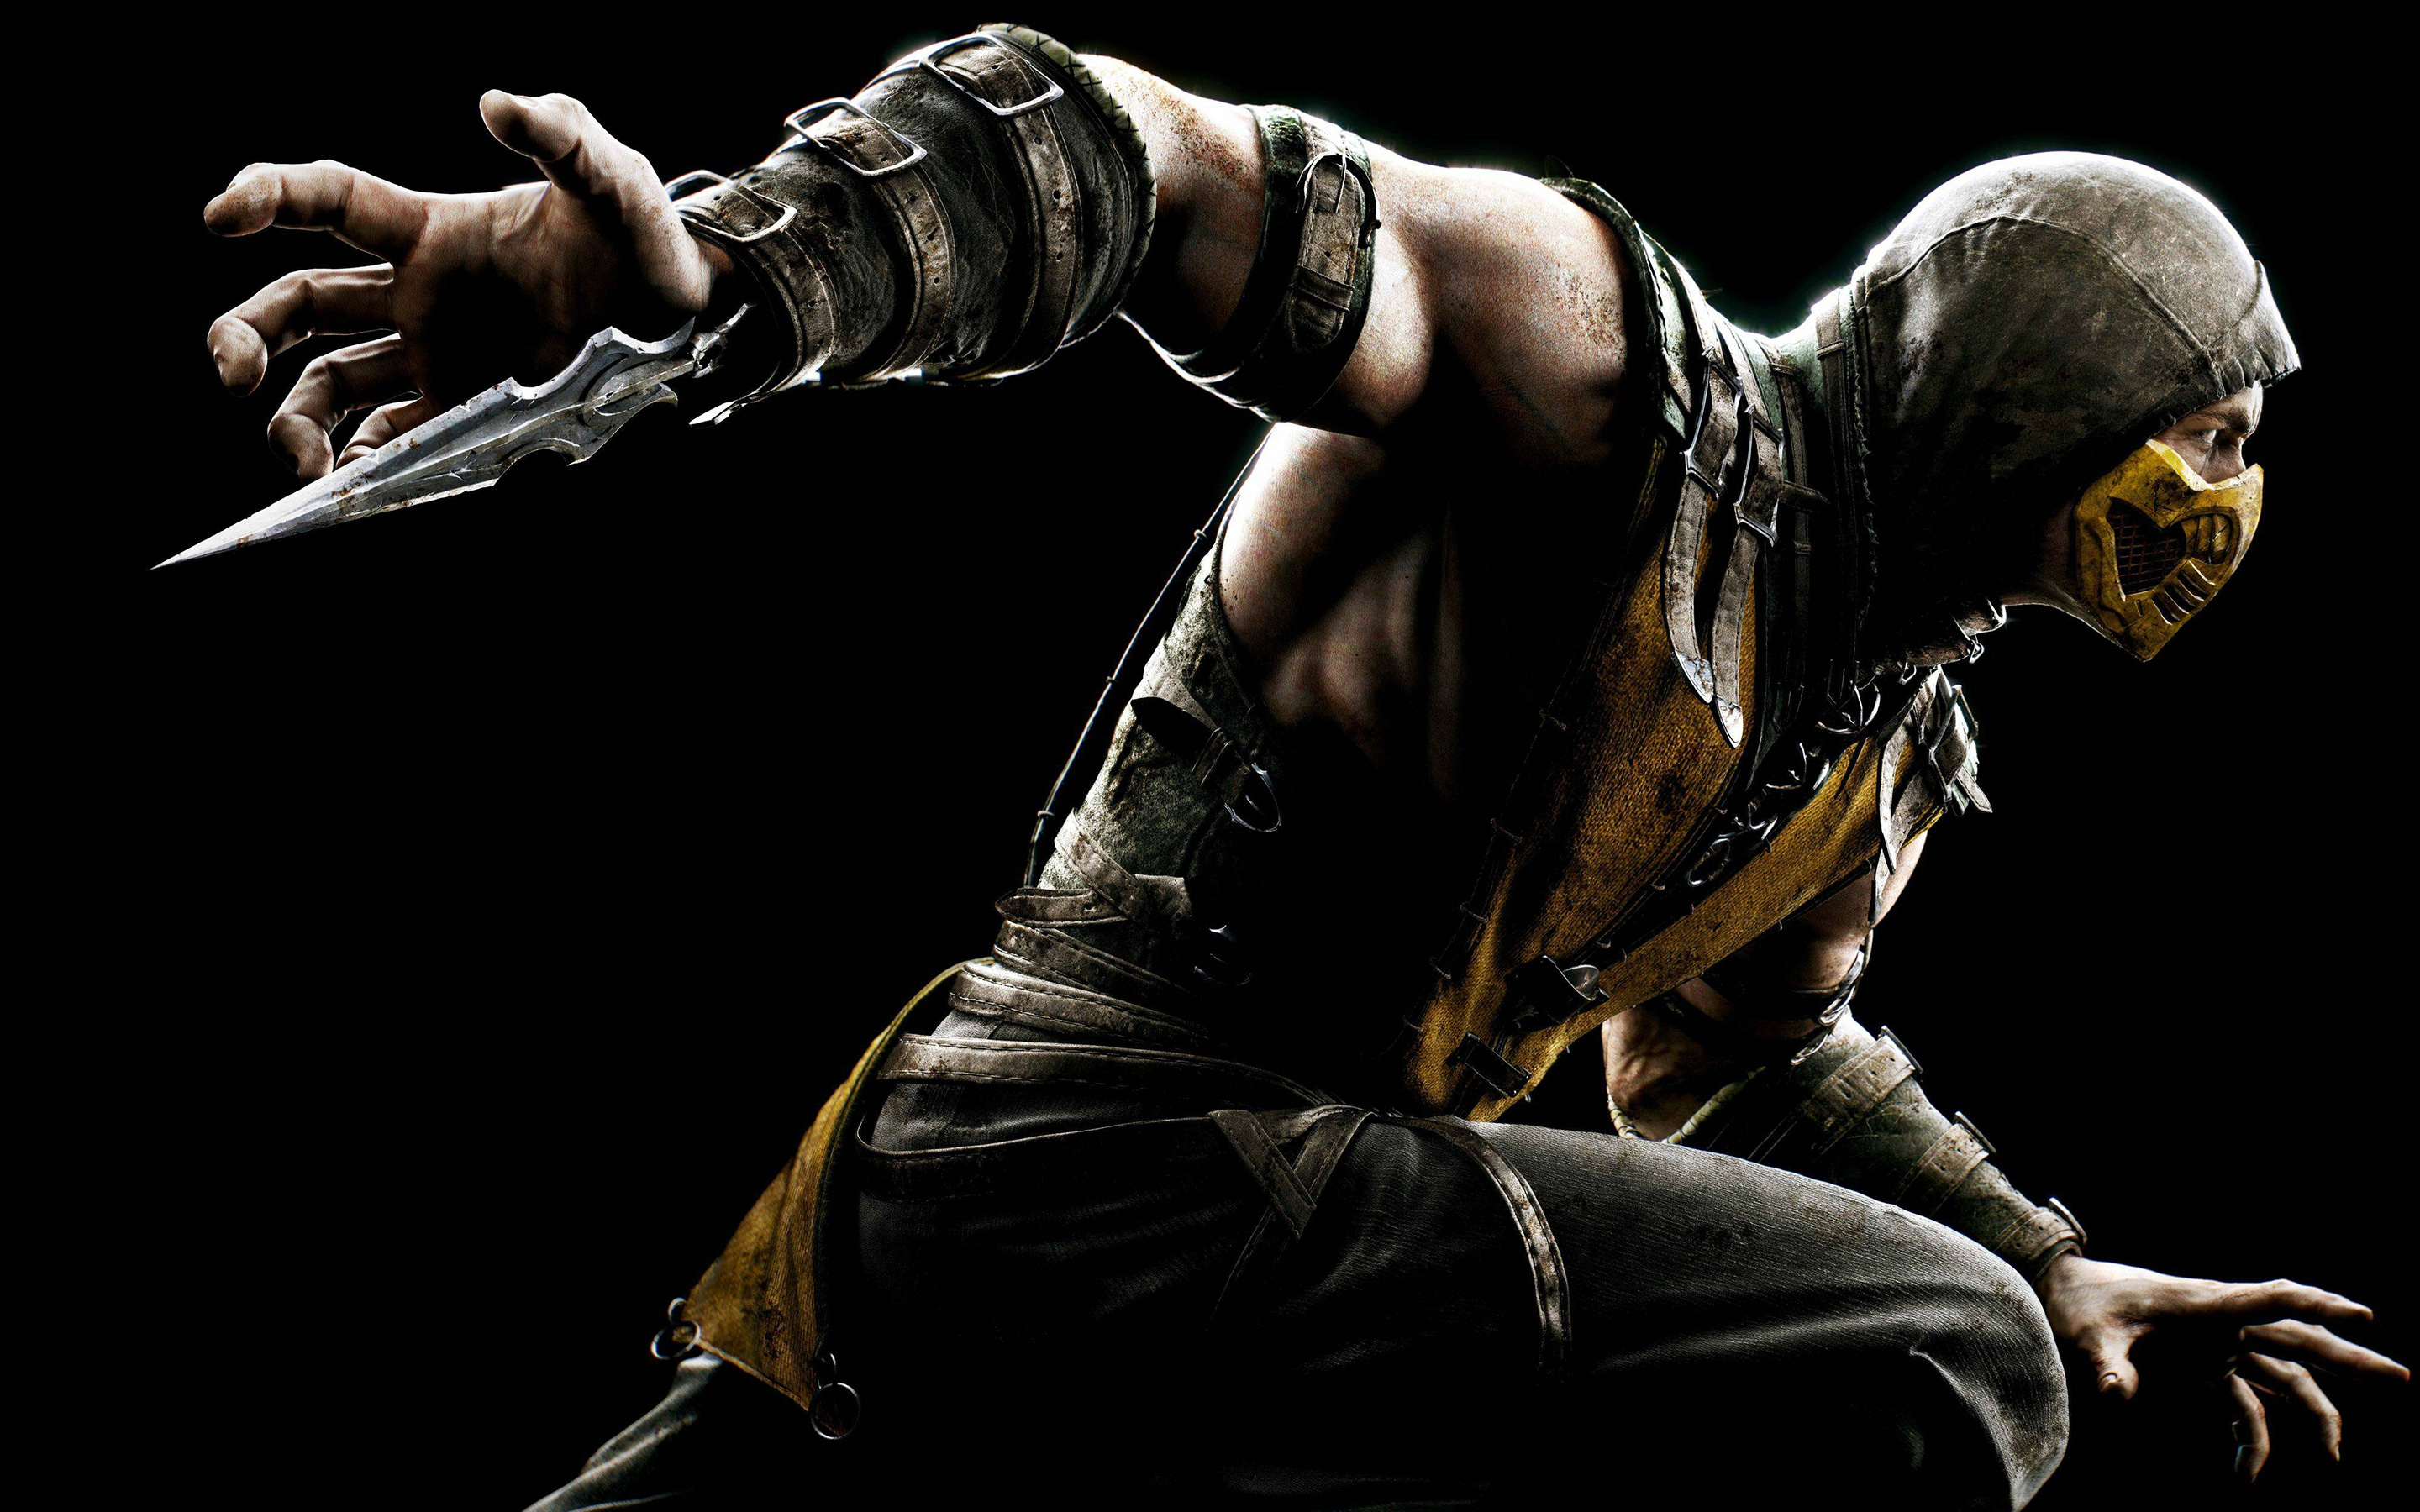 Mortal Kombat X Scorpion Wallpapers HD Wallpapers 2880x1800